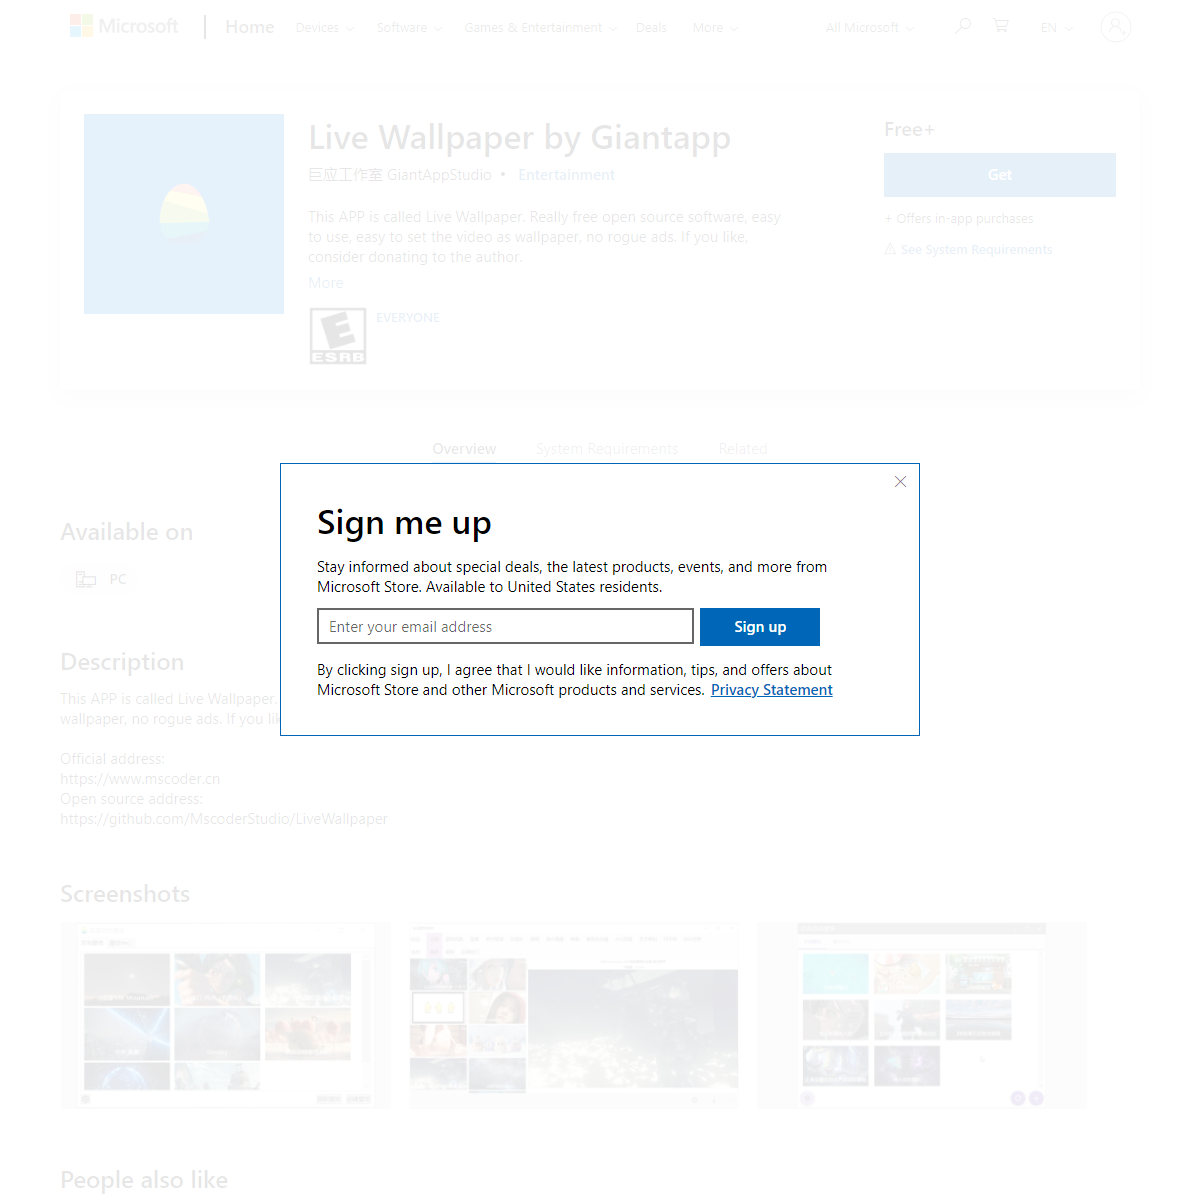 Get Live Wallpaper by Giantapp - Microsoft Store